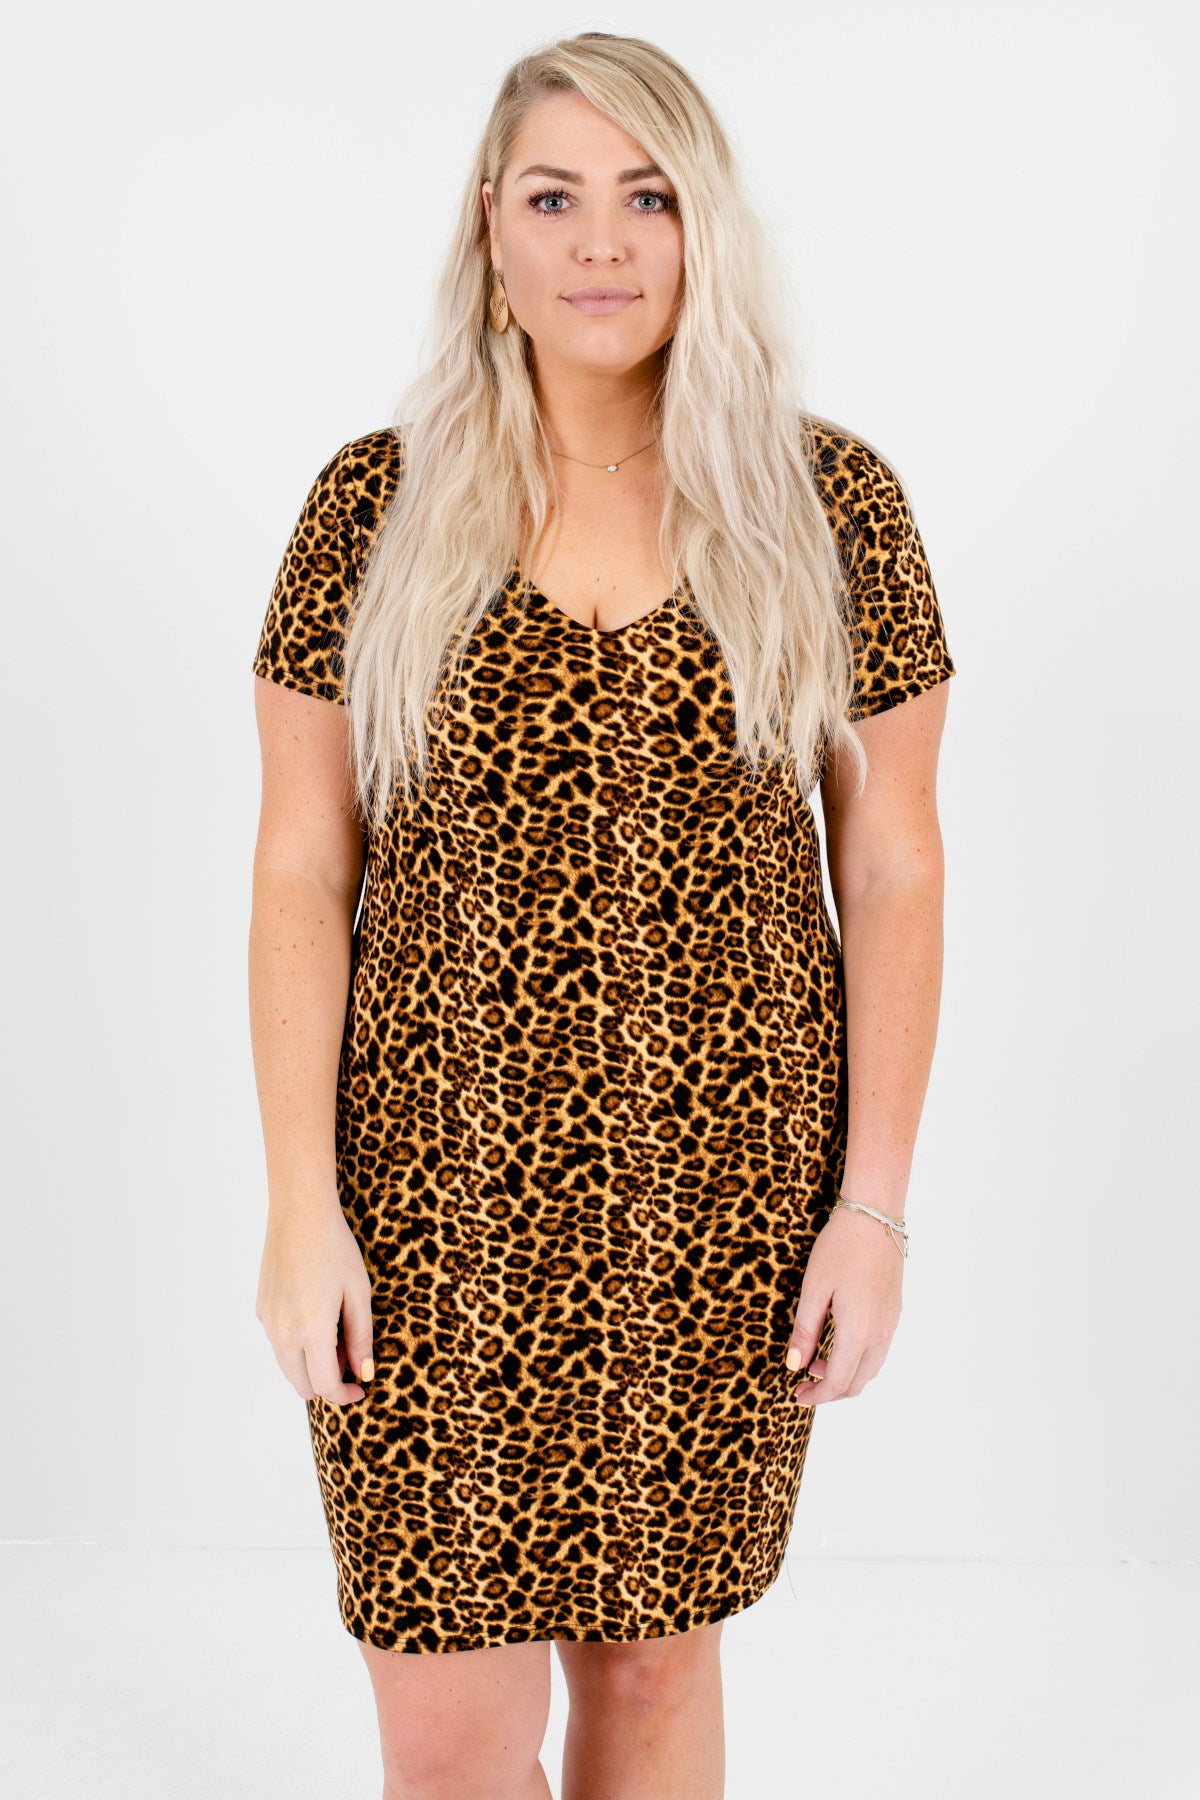 Brown Leopard Animal Print Plus Size Short Sleeve Mini Dresses